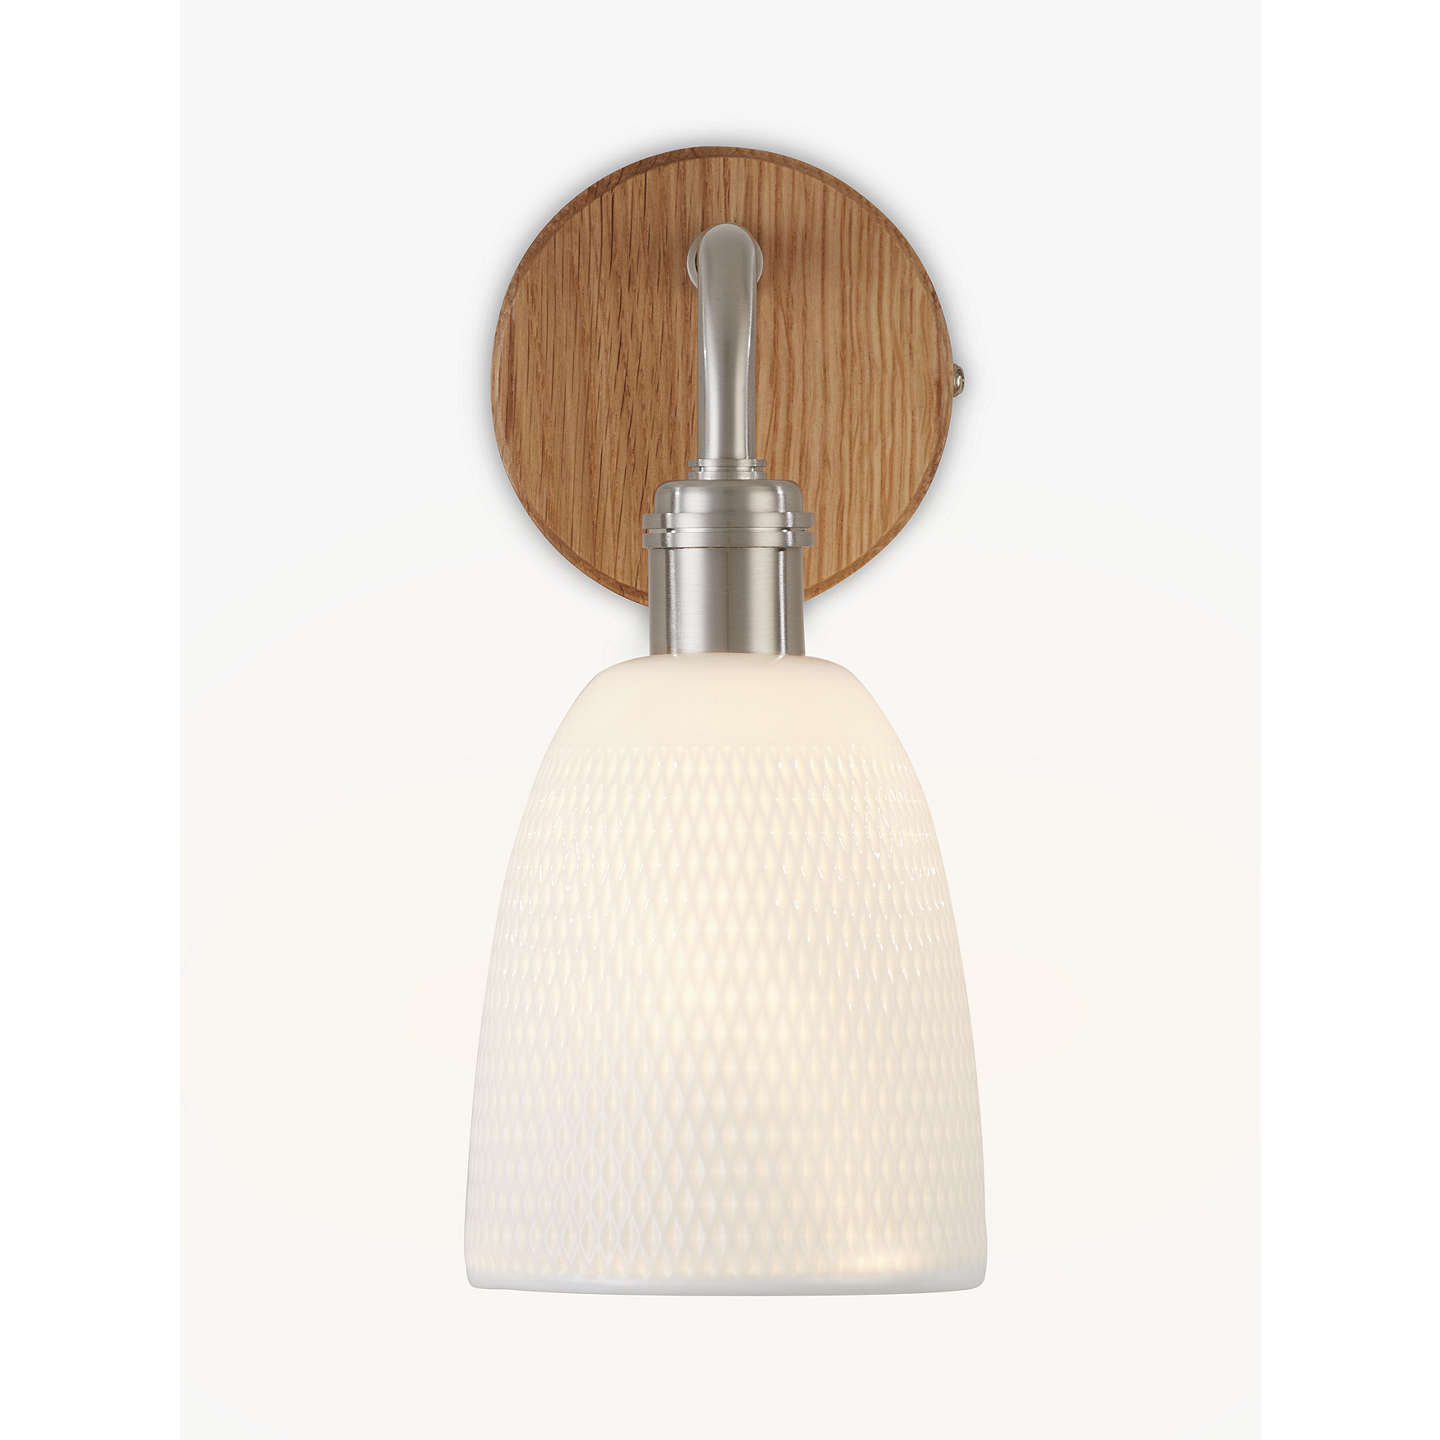 John lewis fitcham wood and ceramic wall light white at john lewis buyjohn lewis fitcham wood and ceramic wall light white online at johnlewis aloadofball Choice Image